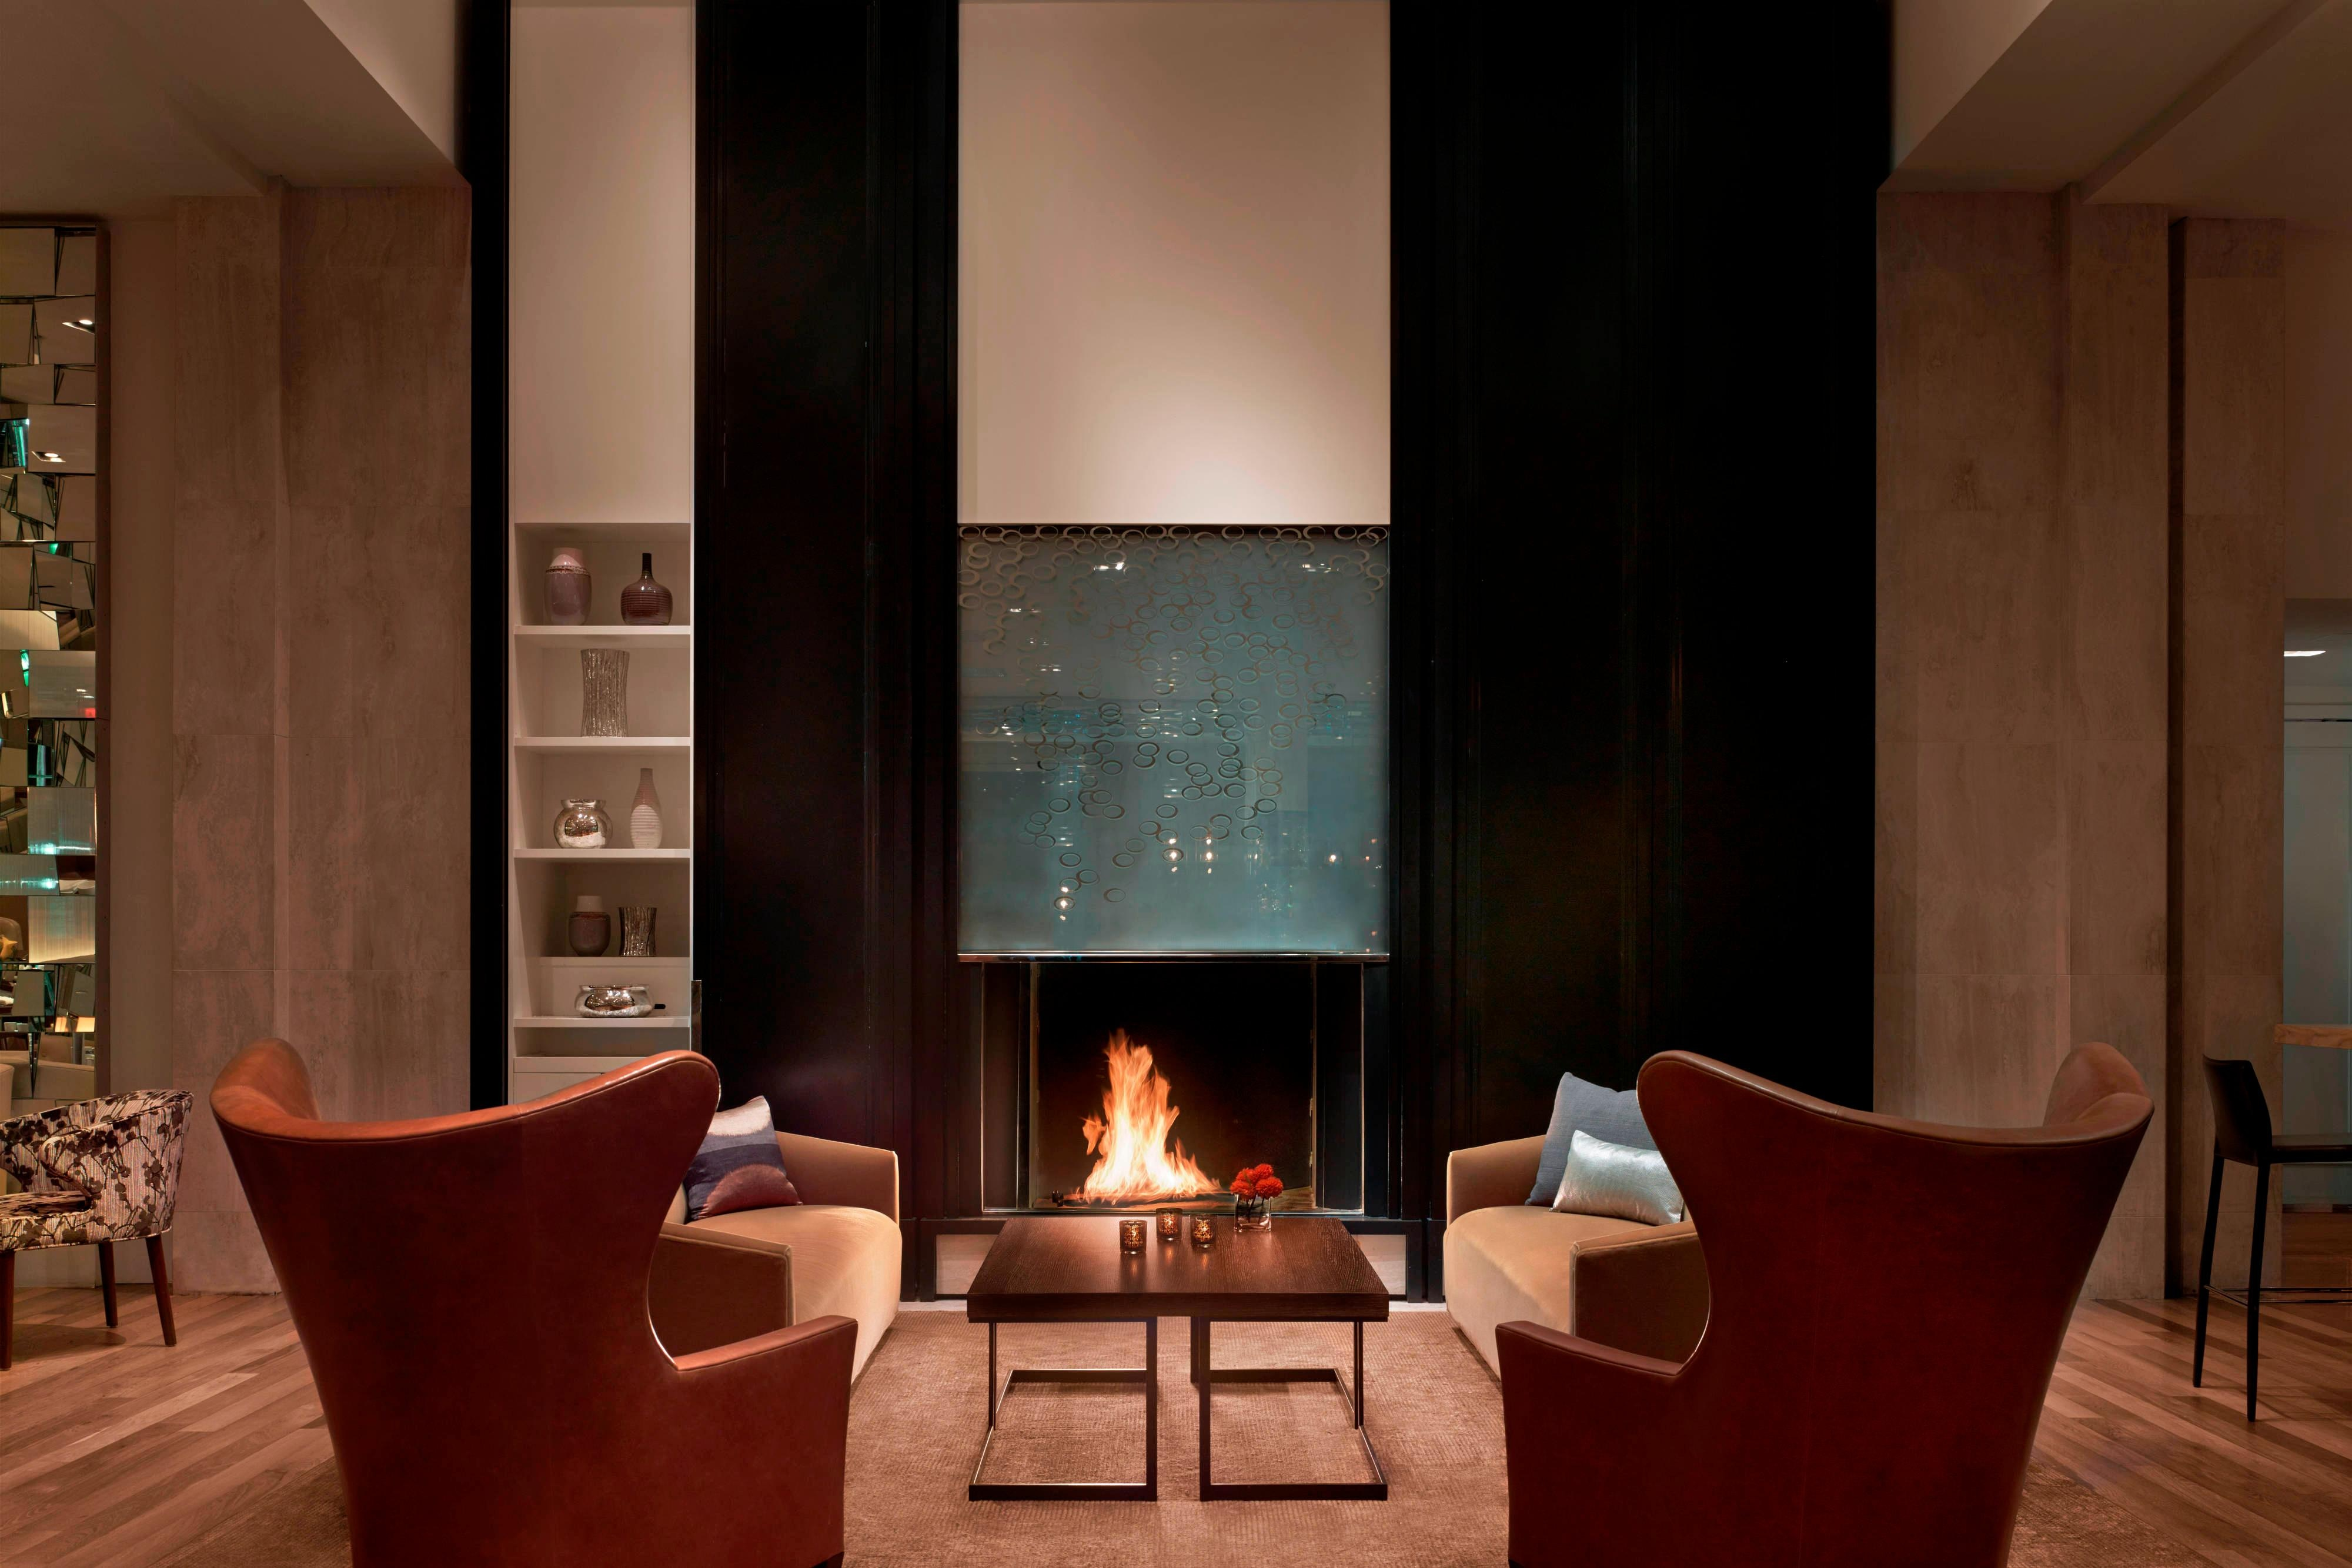 SOUTHGATE Bar & Restaurant – Fireplace